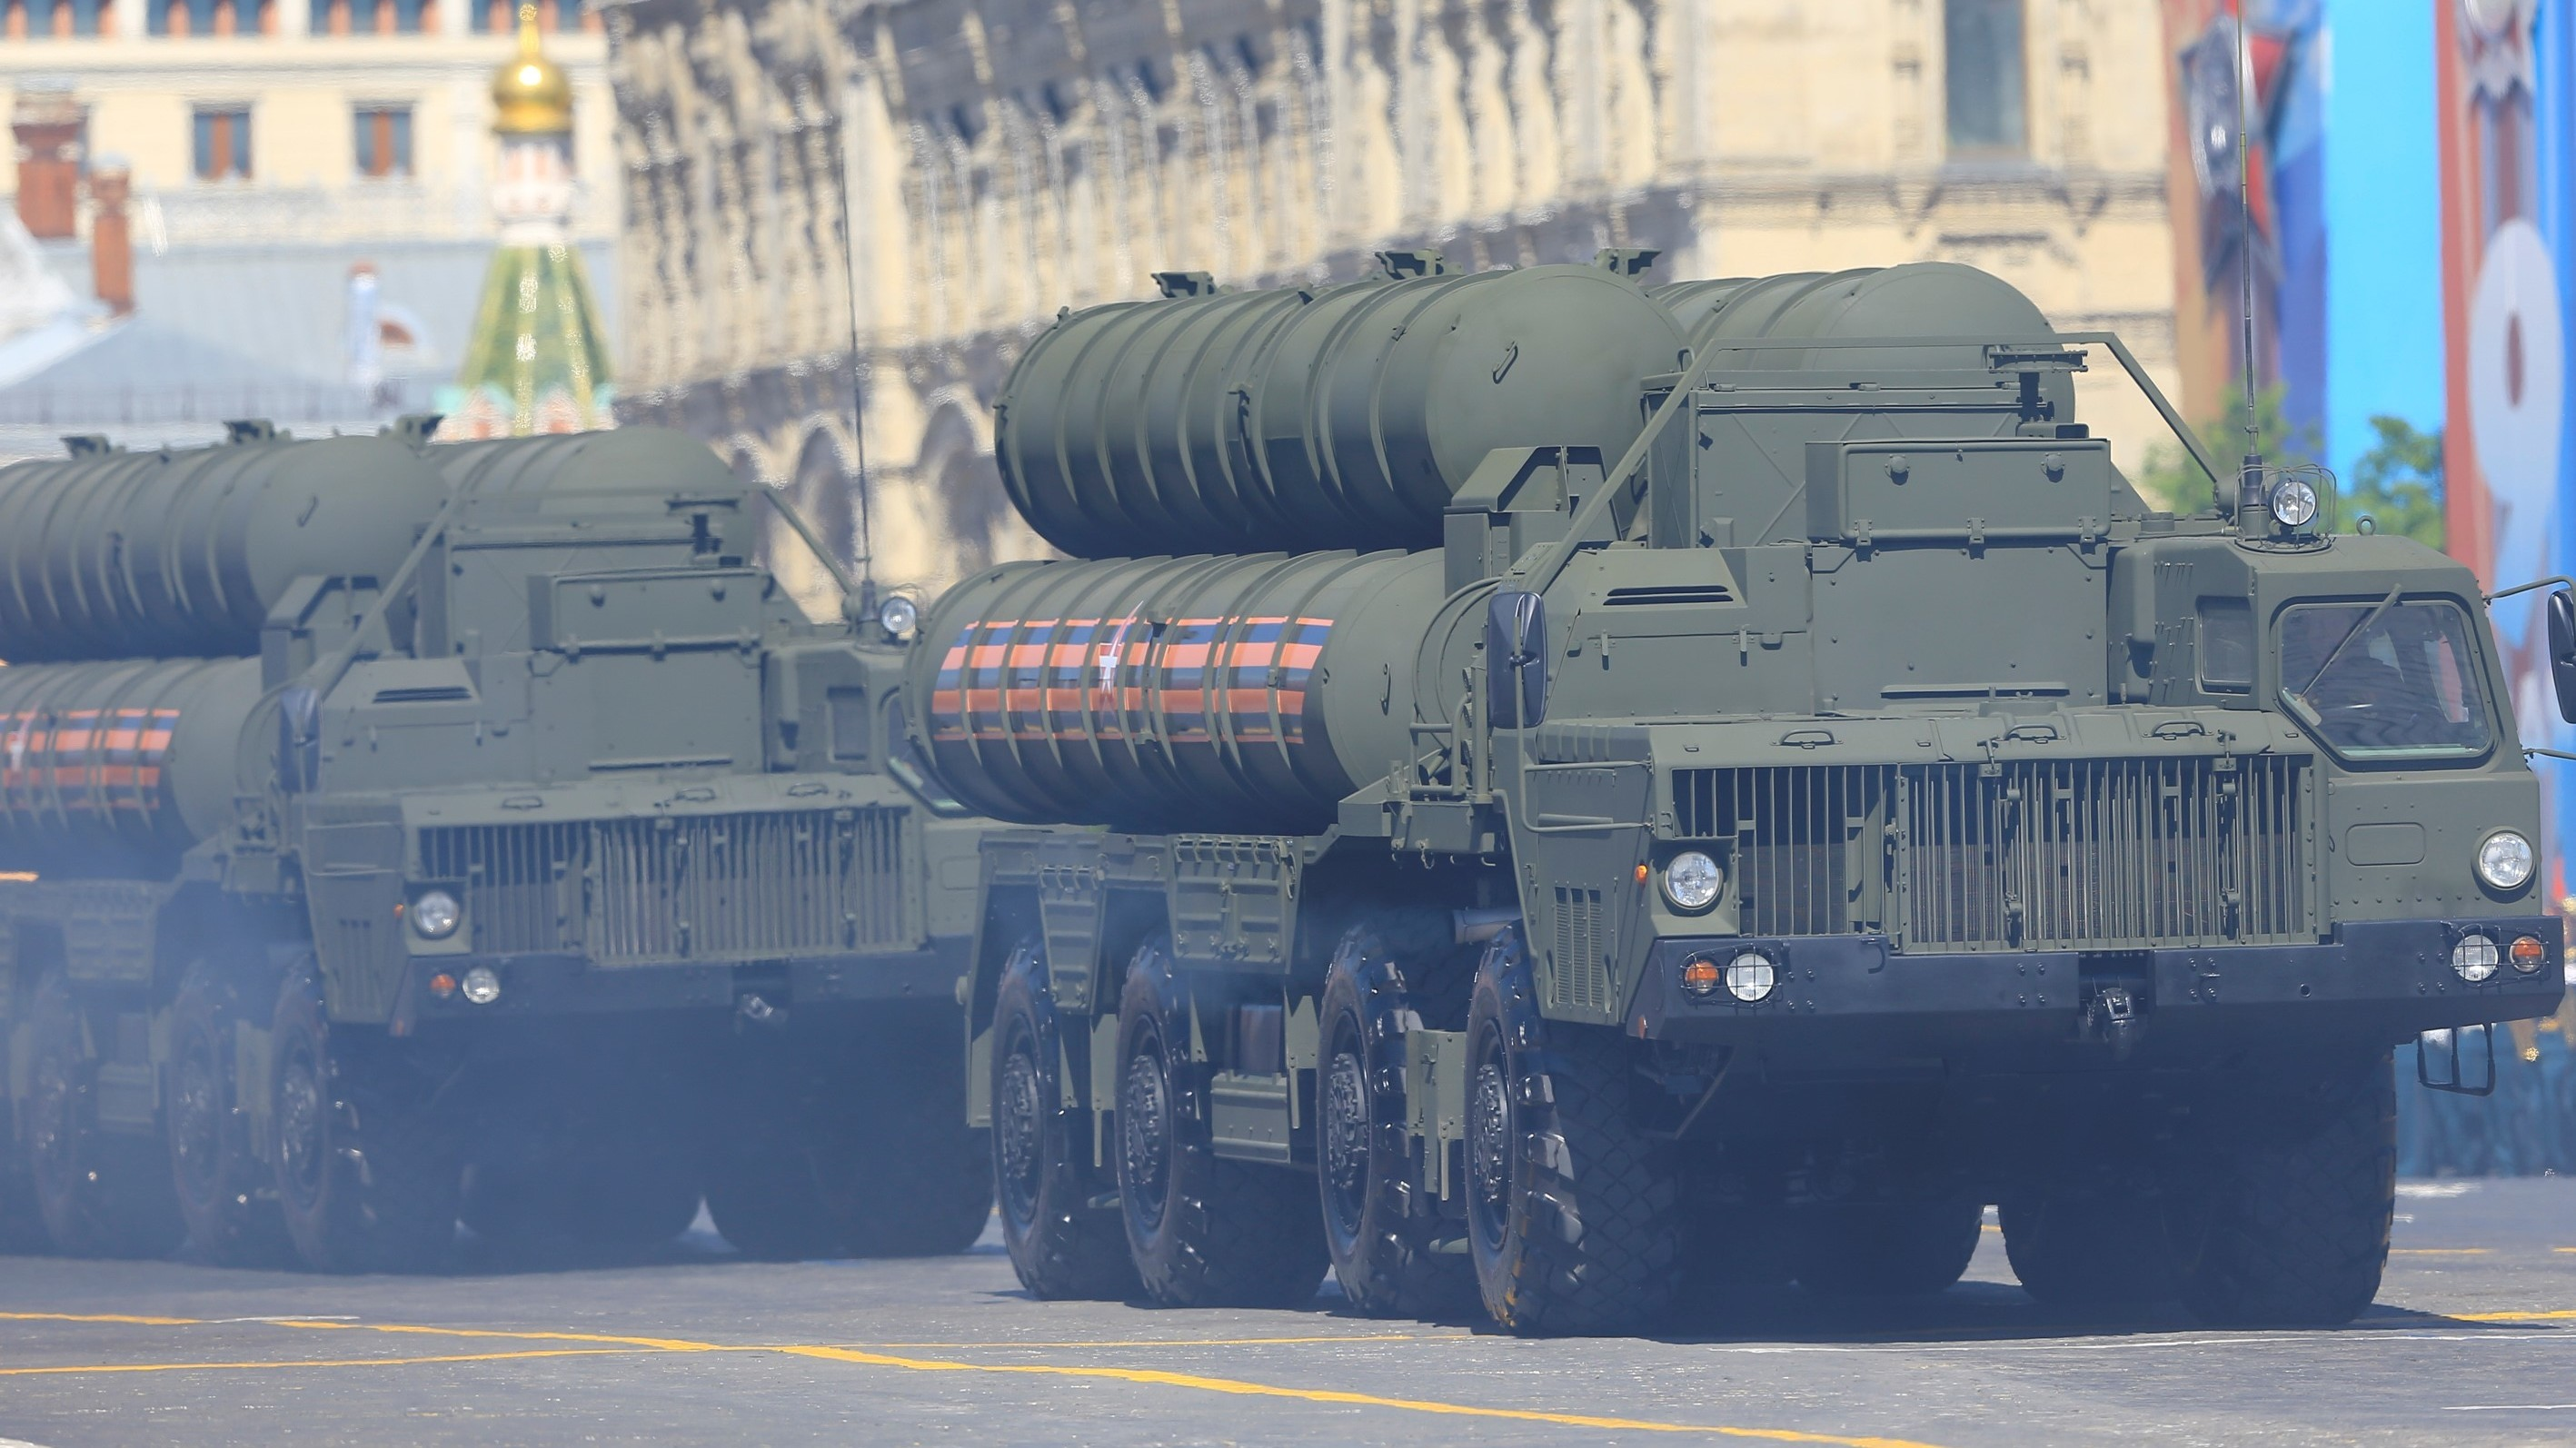 Russia is sending a new division of S-400 Triumf surface-to-air missile systems to Crimea in a new sign of heightened tensions. Here one of the systems is carried during the Victory Day military parade Russia held in May